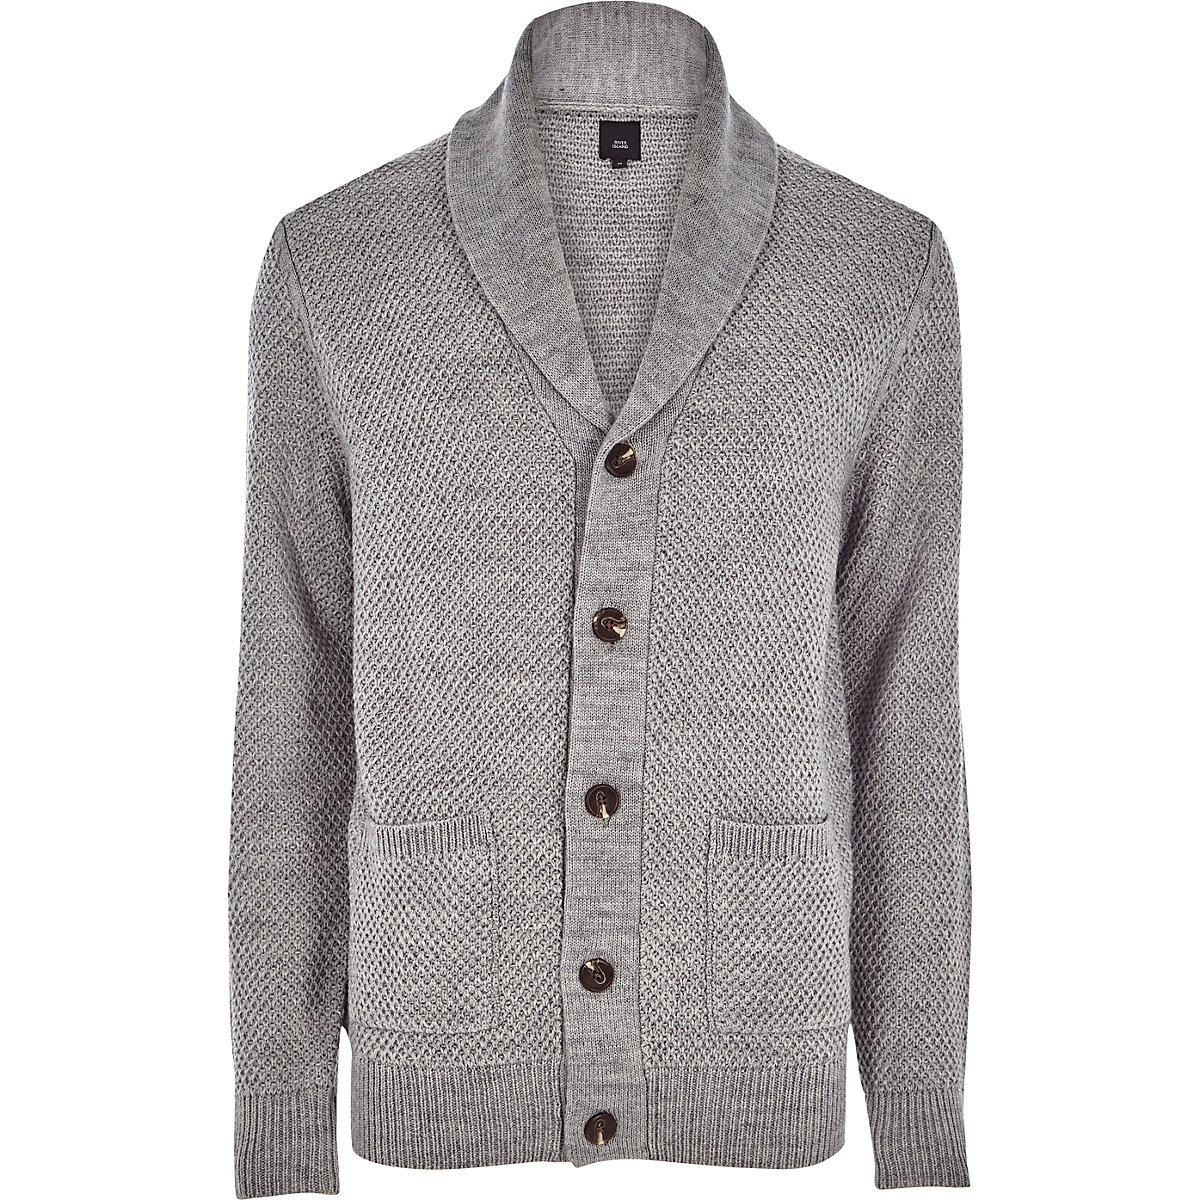 Grey shawl neck button-down knit cardigan